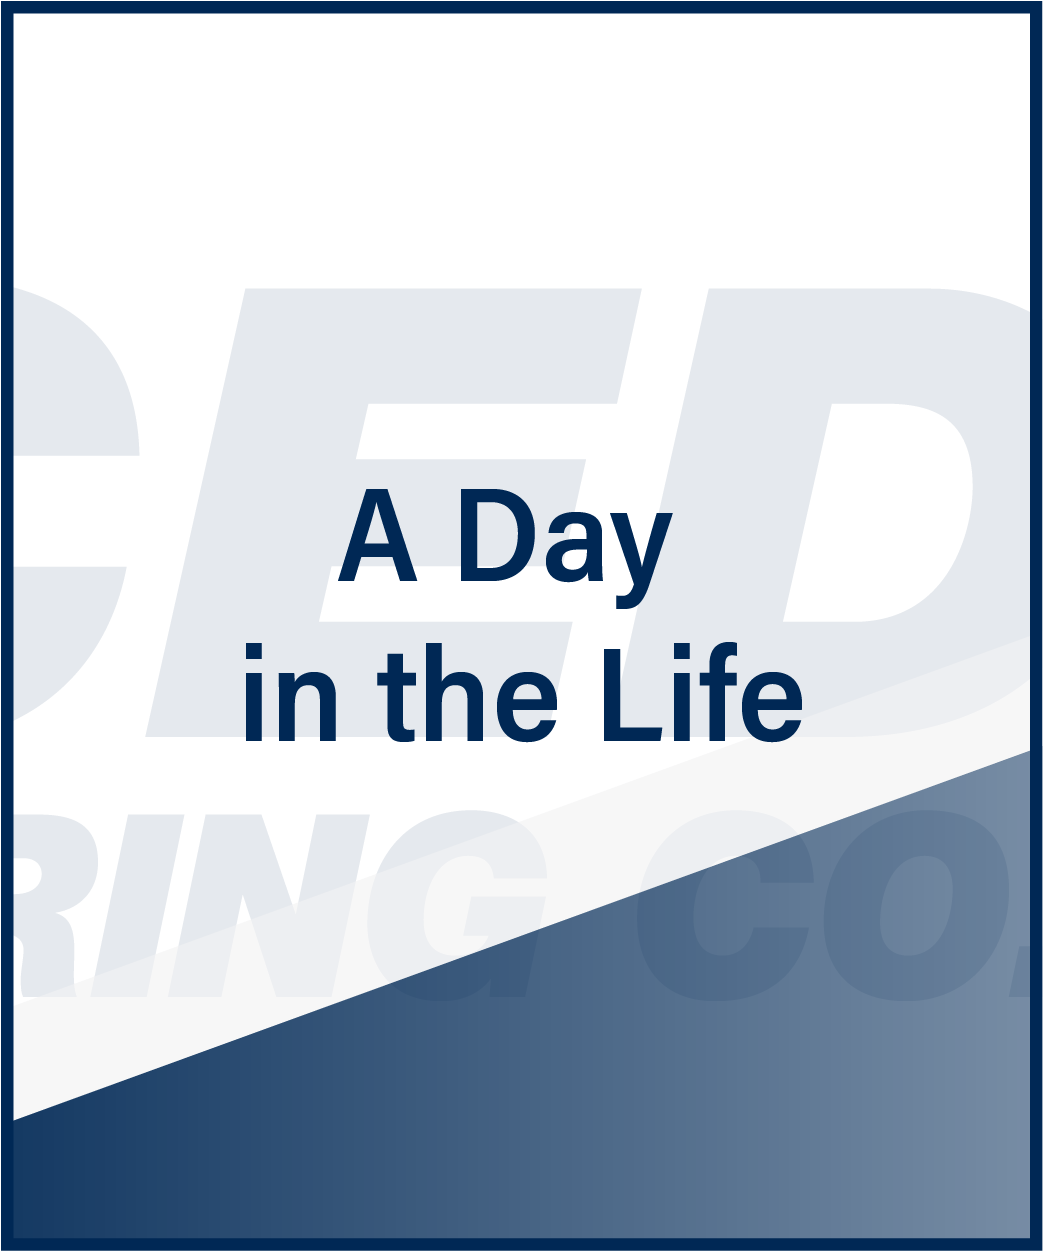 Advanced Machine & Engineering Day in the Life